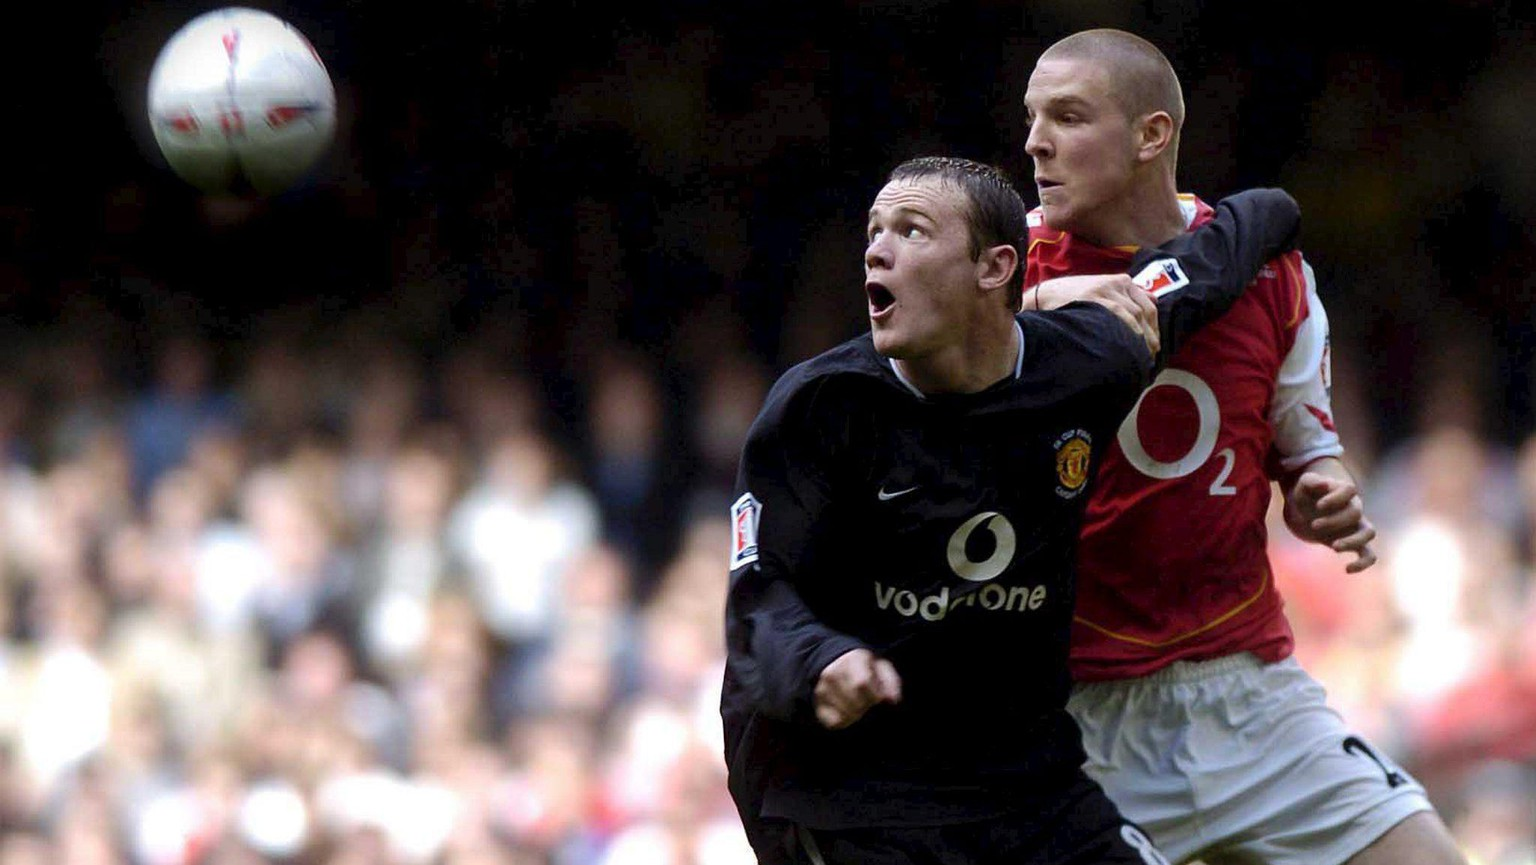 Wayne Rooney (L) of Manchester United battles with Philippe Senderos of Arsenal, 21 May 2005, during the Arsenal v Manchester United FA Cup Final at the Millennium Stadium, Cardiff, Wales, United Kingdom. (KEYSTONE/EPA/Kiyoshi Ota) === UK AND IRELAND OUT ===